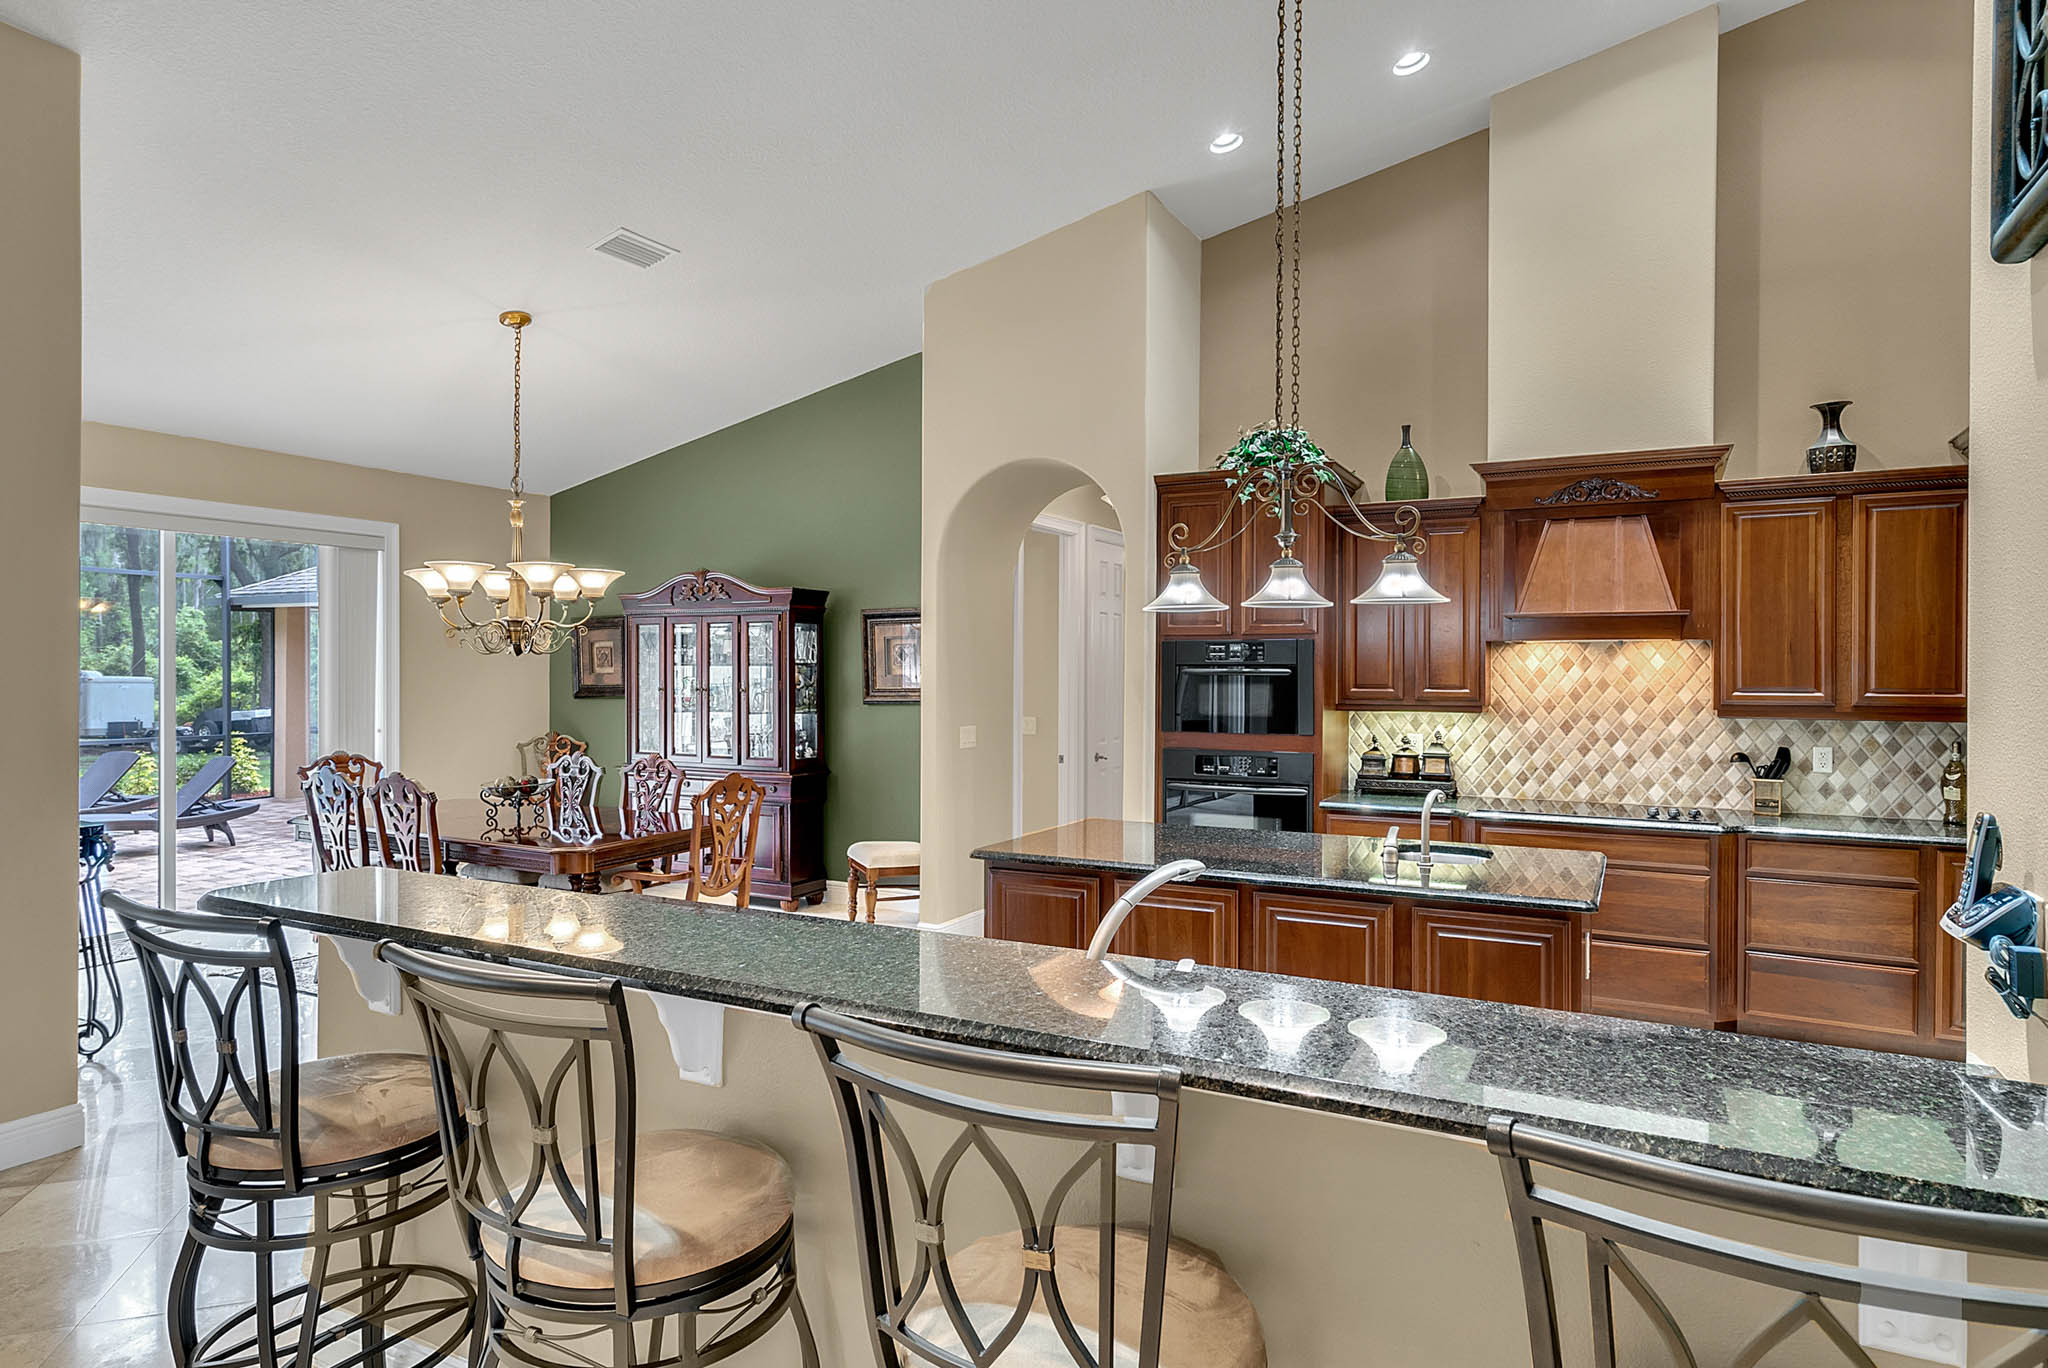 7919-Florida-Boys-Ranch-Rd--Groveland--FL-34736----11---Kitchen.jpg